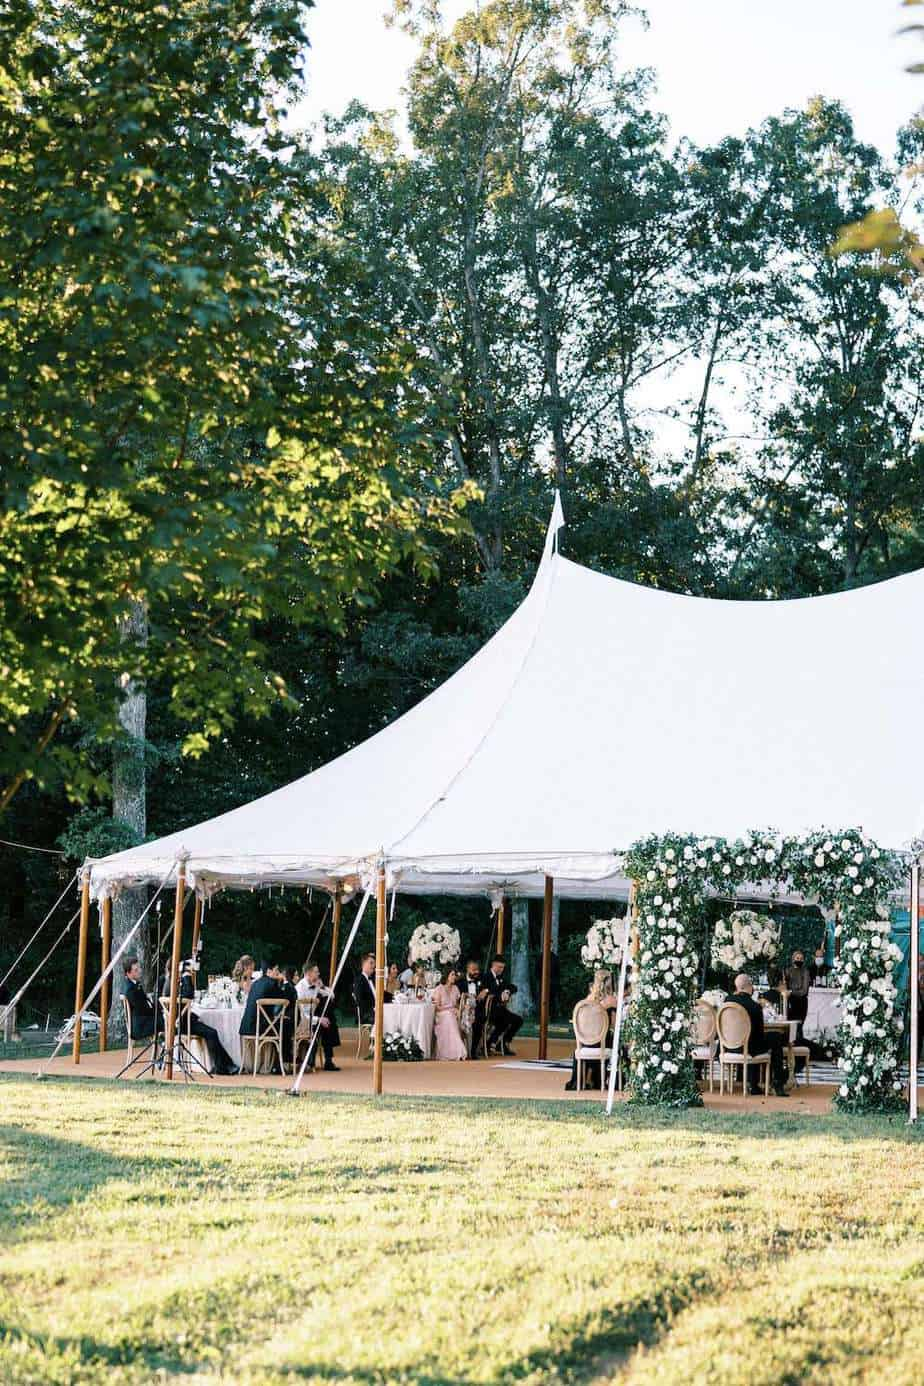 Goodstone Inn wedding sailcloth tent in the Woodsy Garden